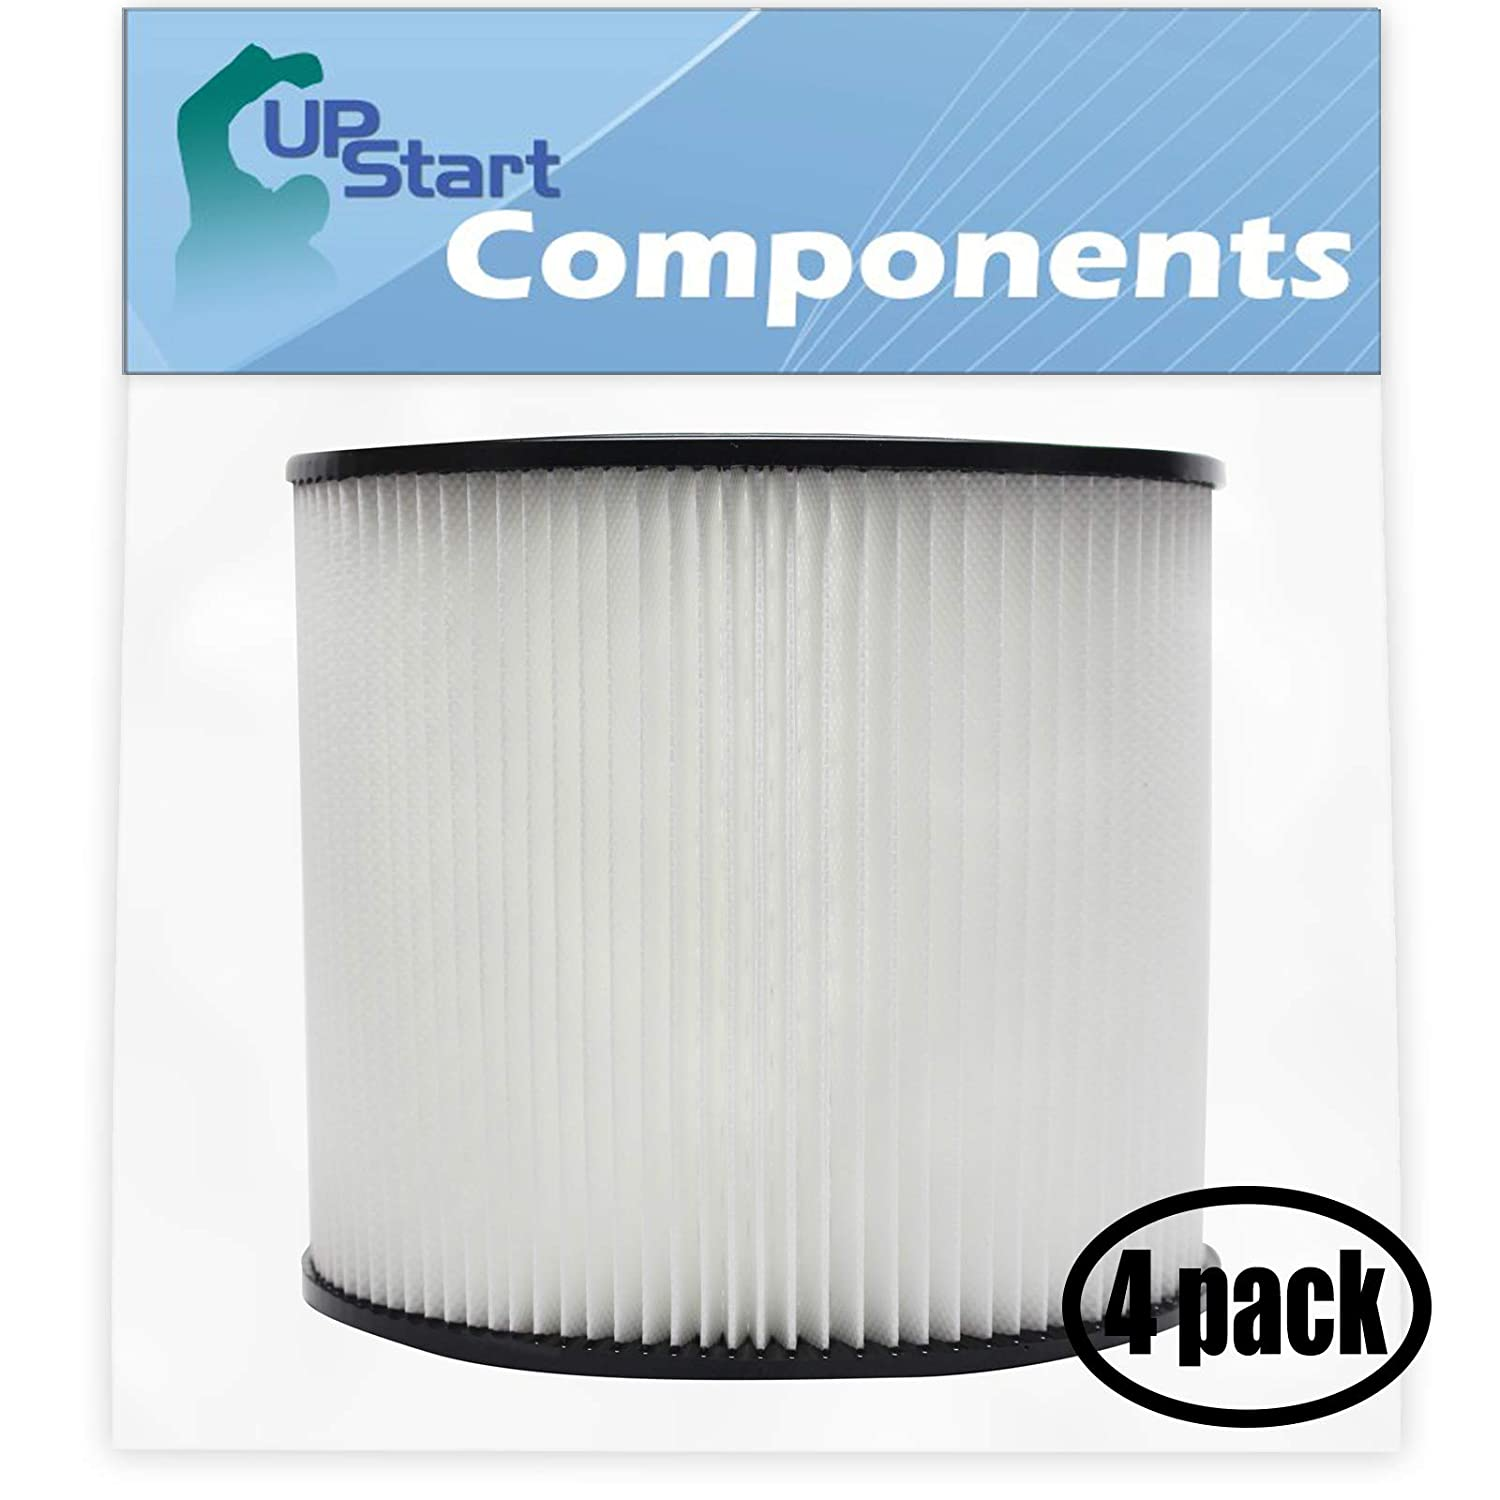 4-Pack Replacement 90304 Filter with 1 Micro Vacuum Attachment Kit for Shop-Vac – Compatible with Shop-Vac 90304, Shop-Vac LB650C, Shop-Vac QPL650, Shop-Vac 965-06-00, Shop-Vac CH87-650C, Shop-Vac SL14-300A, Shop-Vac 925-29-10, Shop-Vac 963-12-00, Shop-Vac 596-07-00, Shop-Vac 586-74-00, Shop-Vac 586-75-00, Shop-Vac 586-76-00